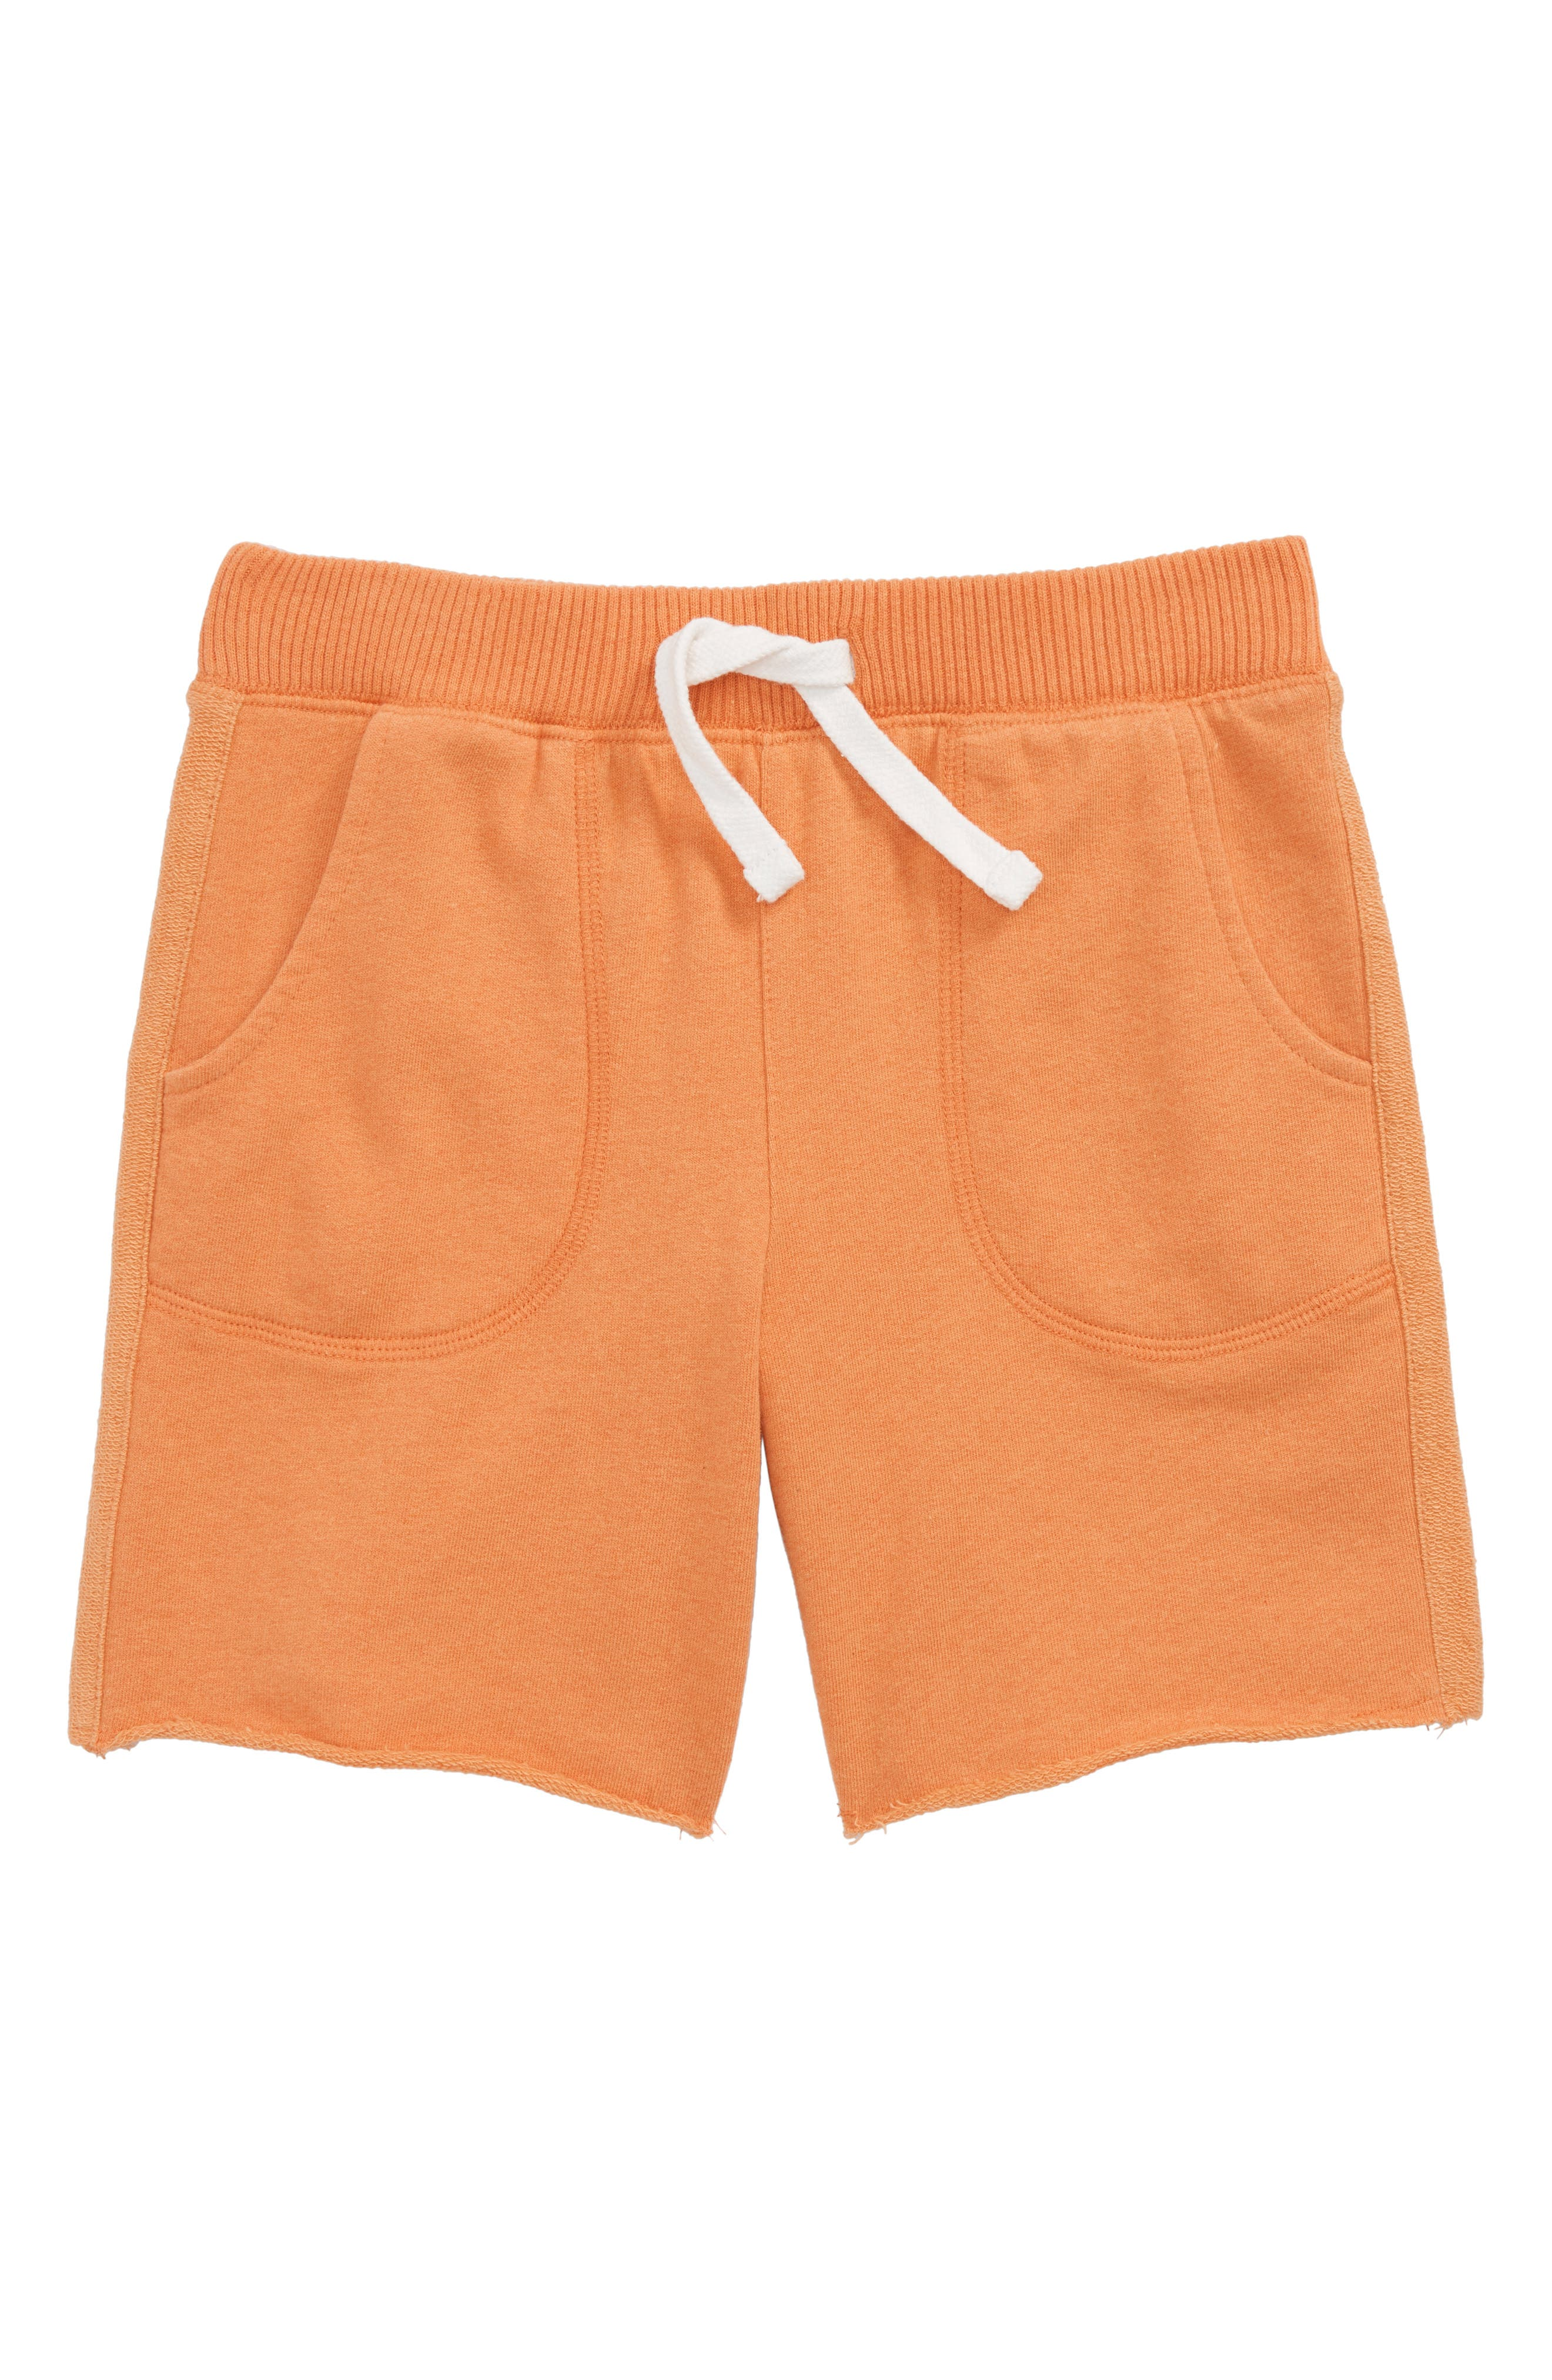 Fleece Shorts,                             Main thumbnail 1, color,                             Orange Glaze